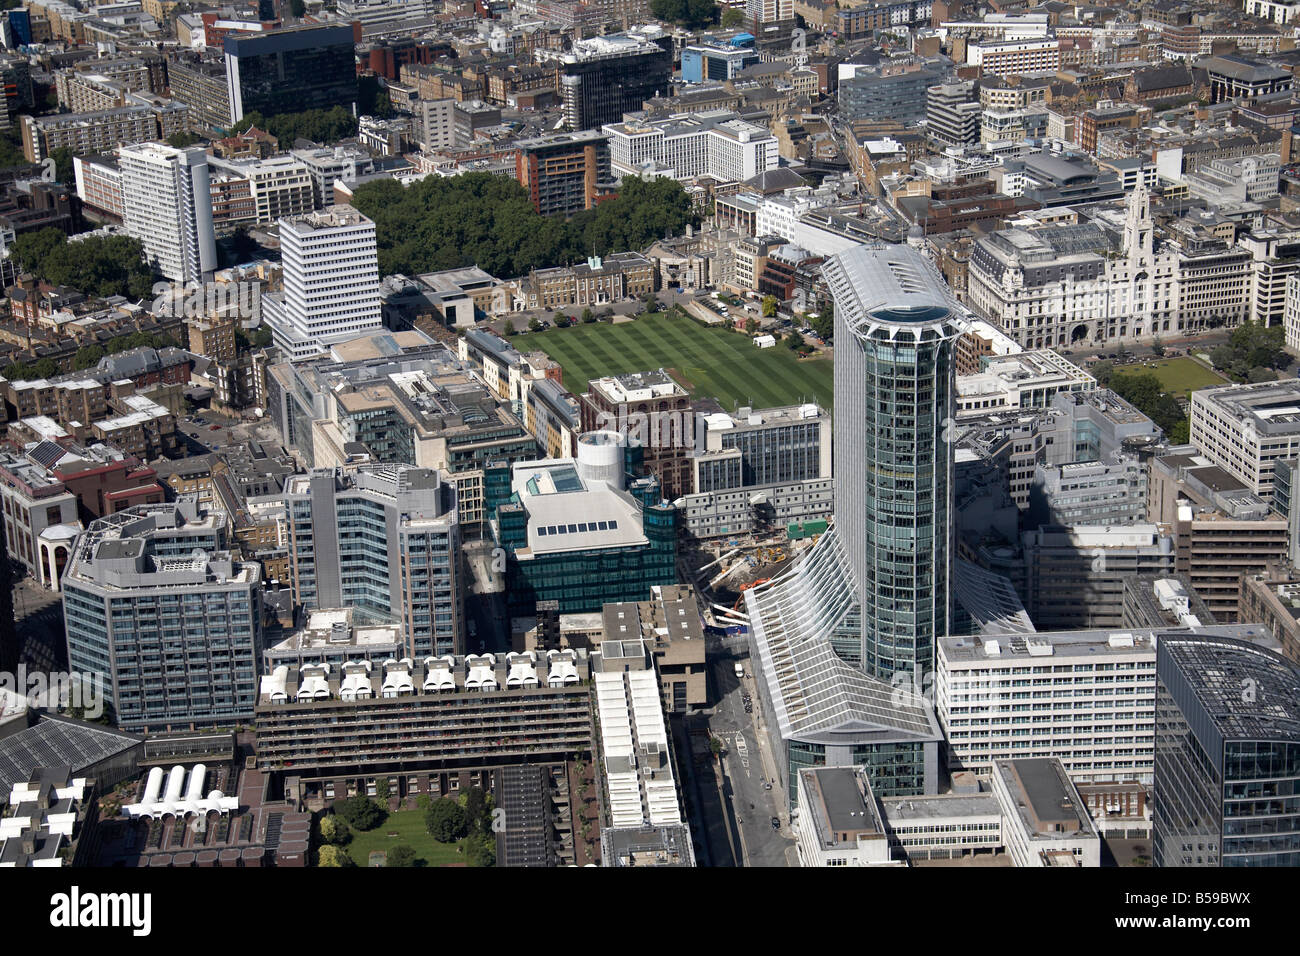 Aerial View North East Of Hac Royal Artillery Gardens Inner City Stock Photo Royalty Free Image